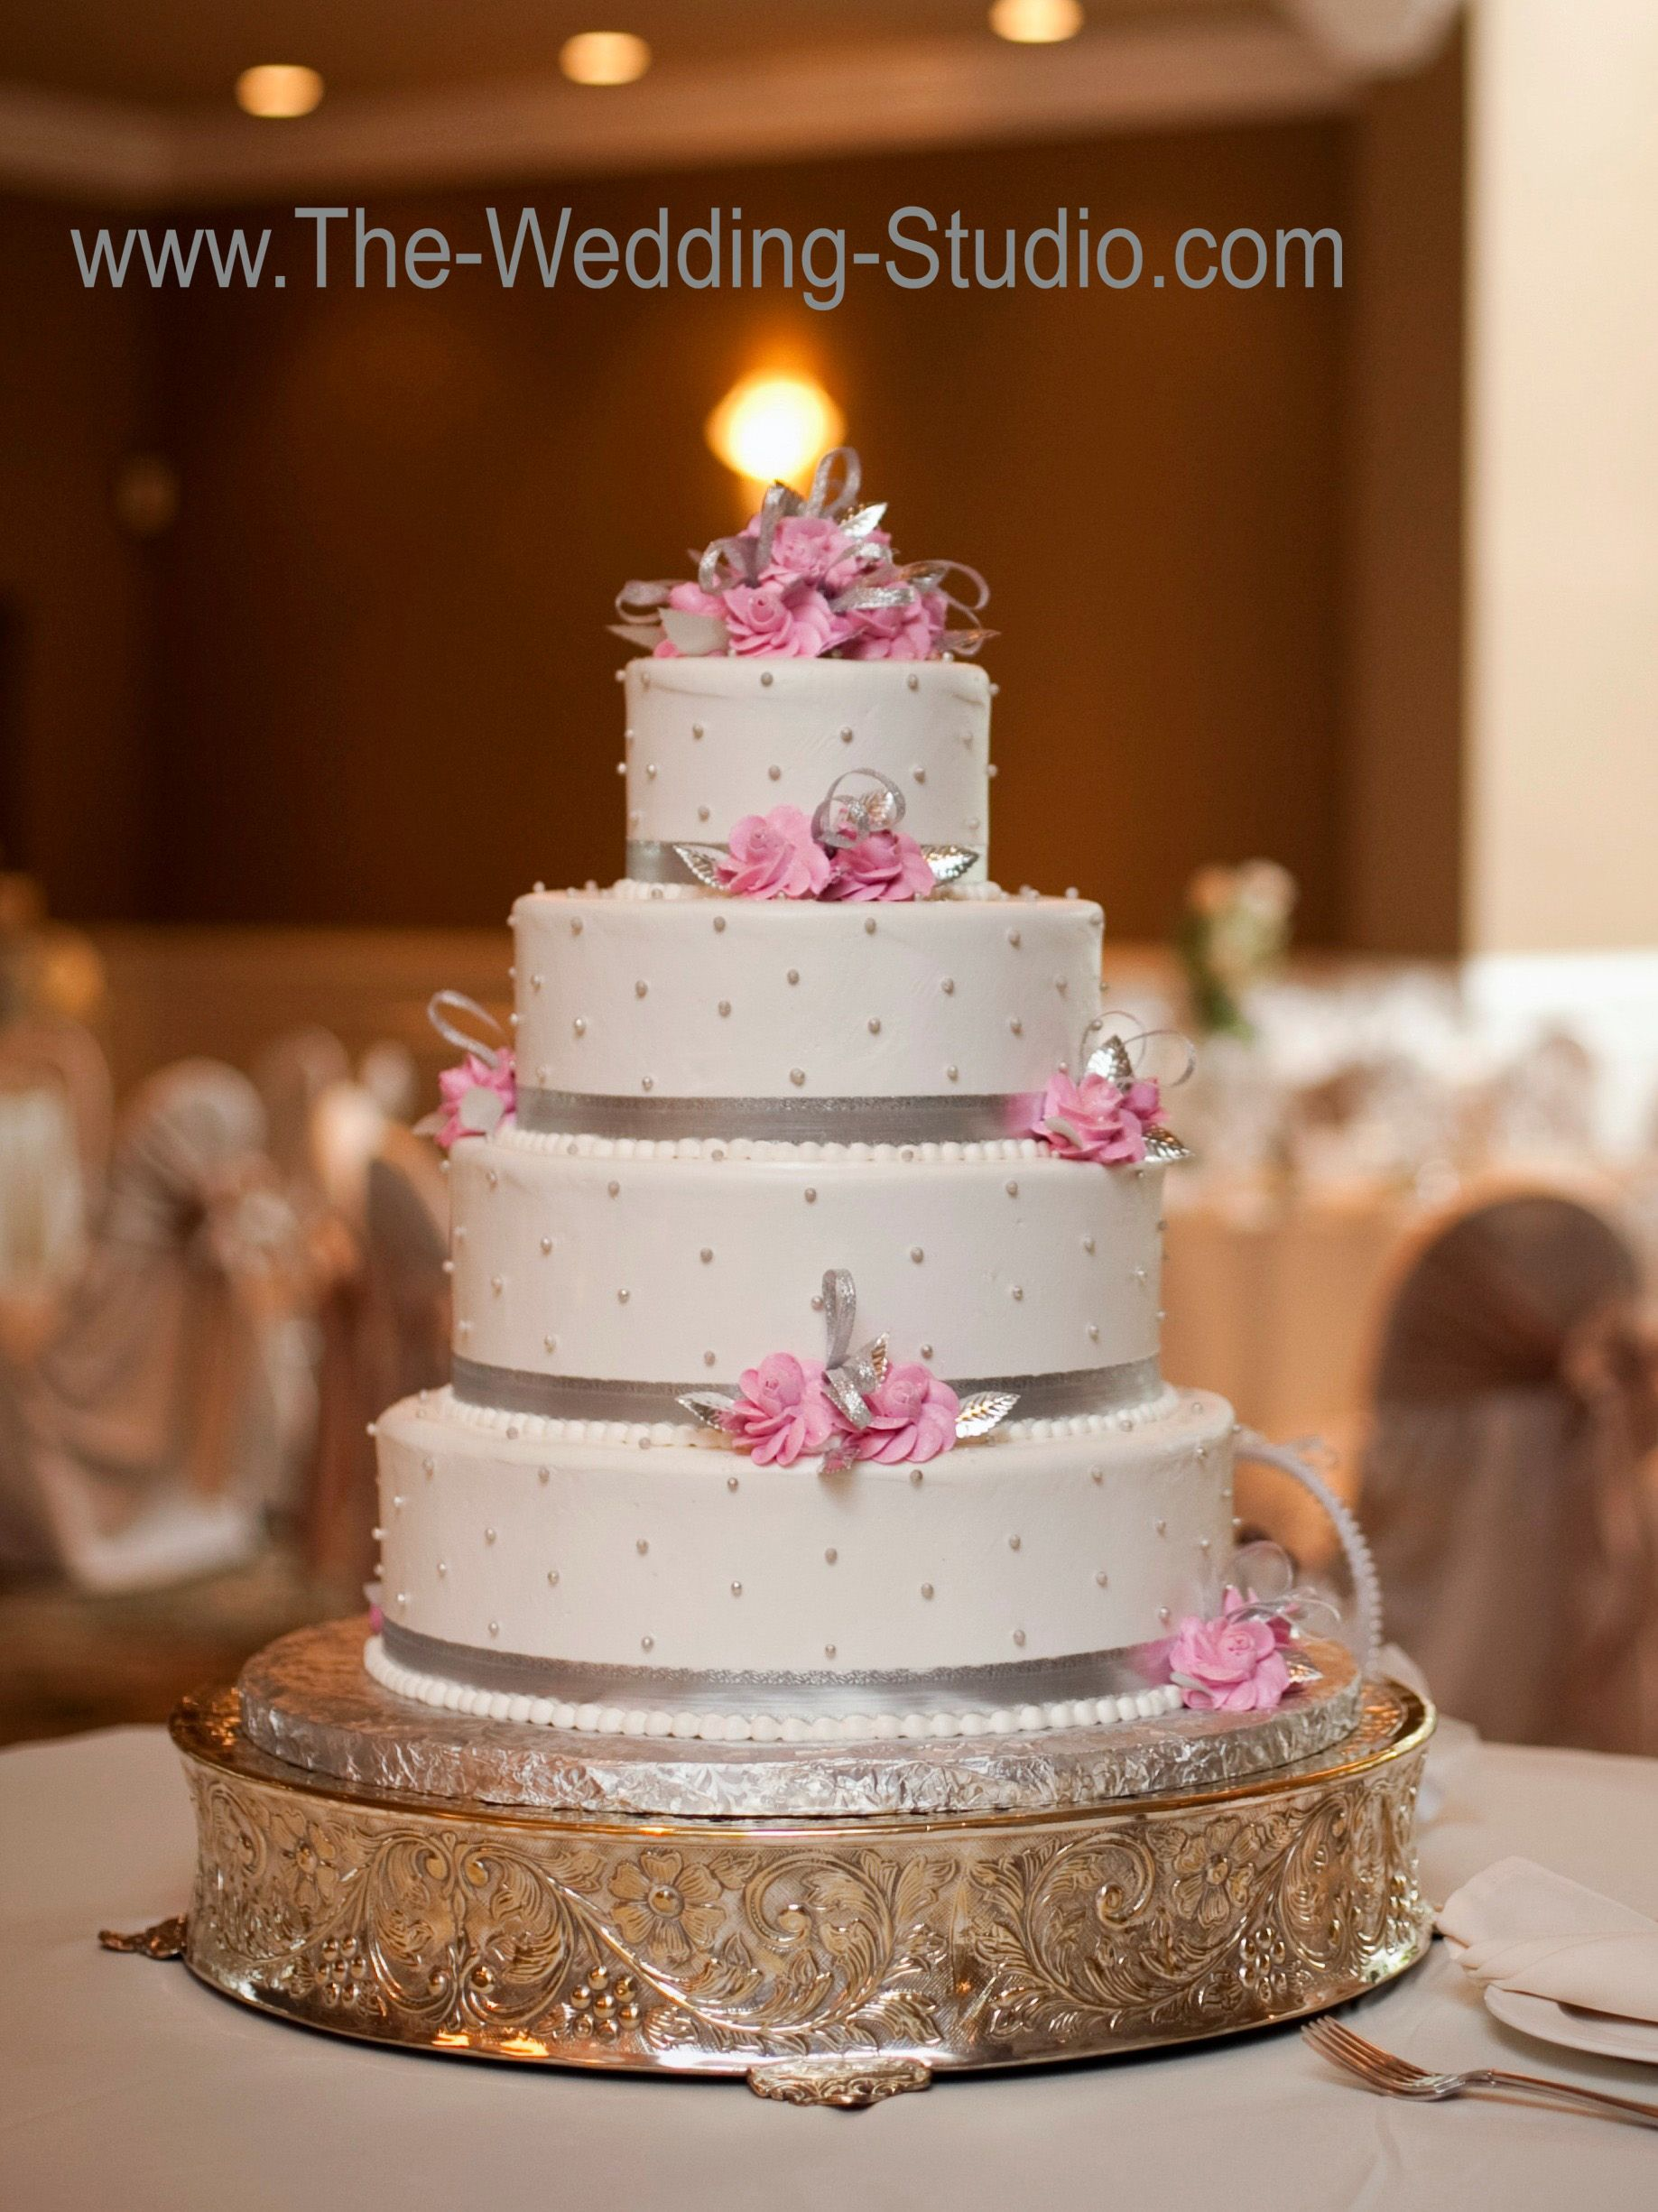 White Wedding Cake With Silver Ribbons Pink Flowers So Pretty